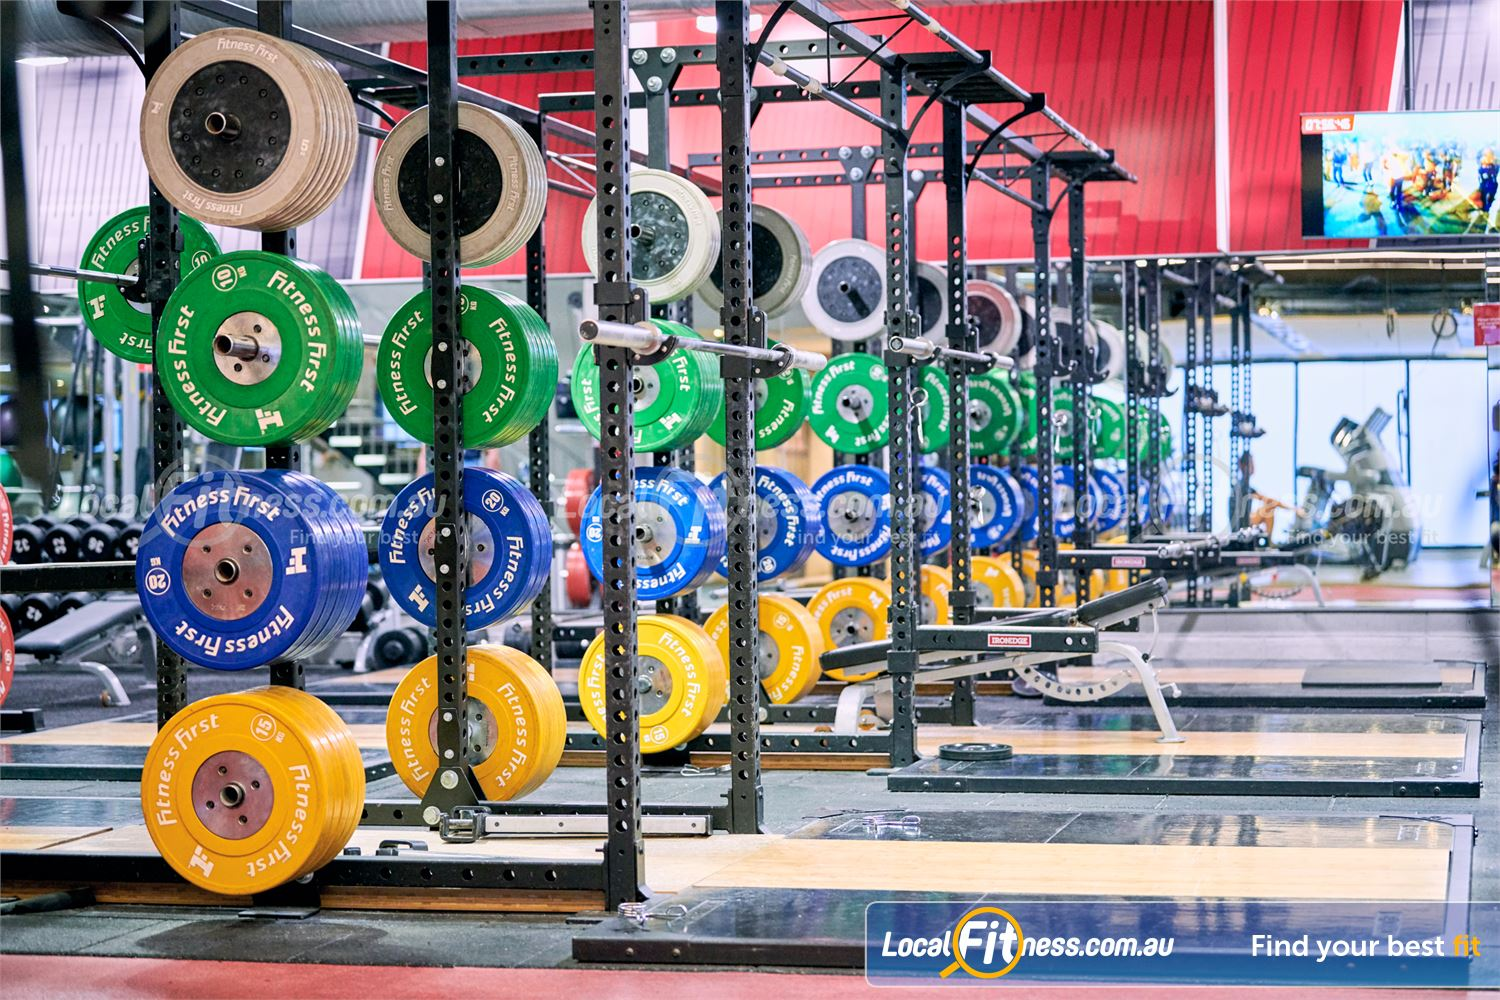 Fitness First Carlingford High-performance strength cages with Olympic lifting platforms perfect for deadlifts.